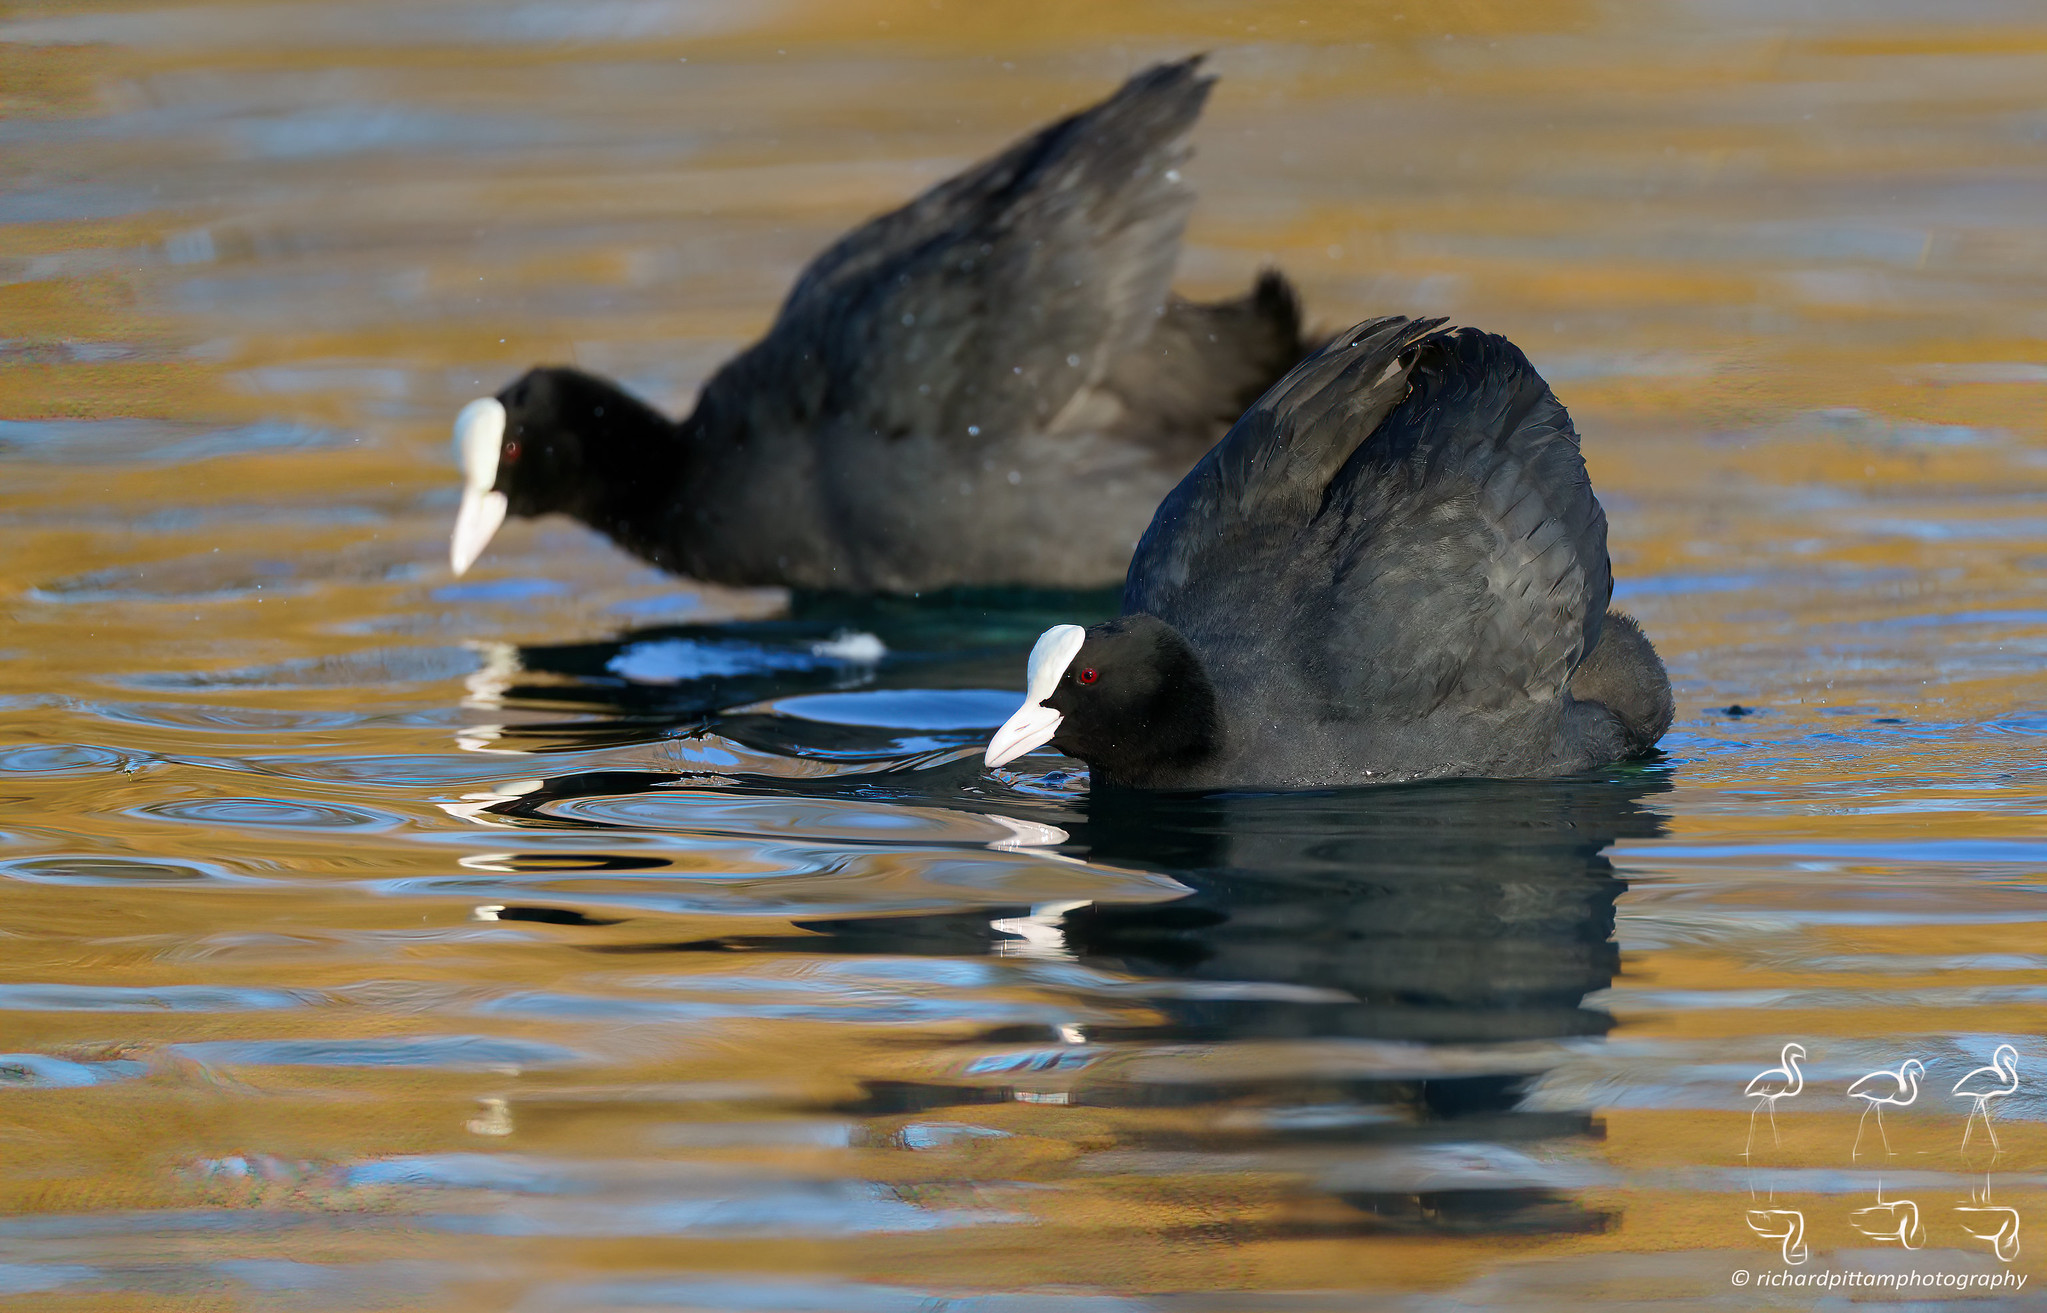 Warring Coots